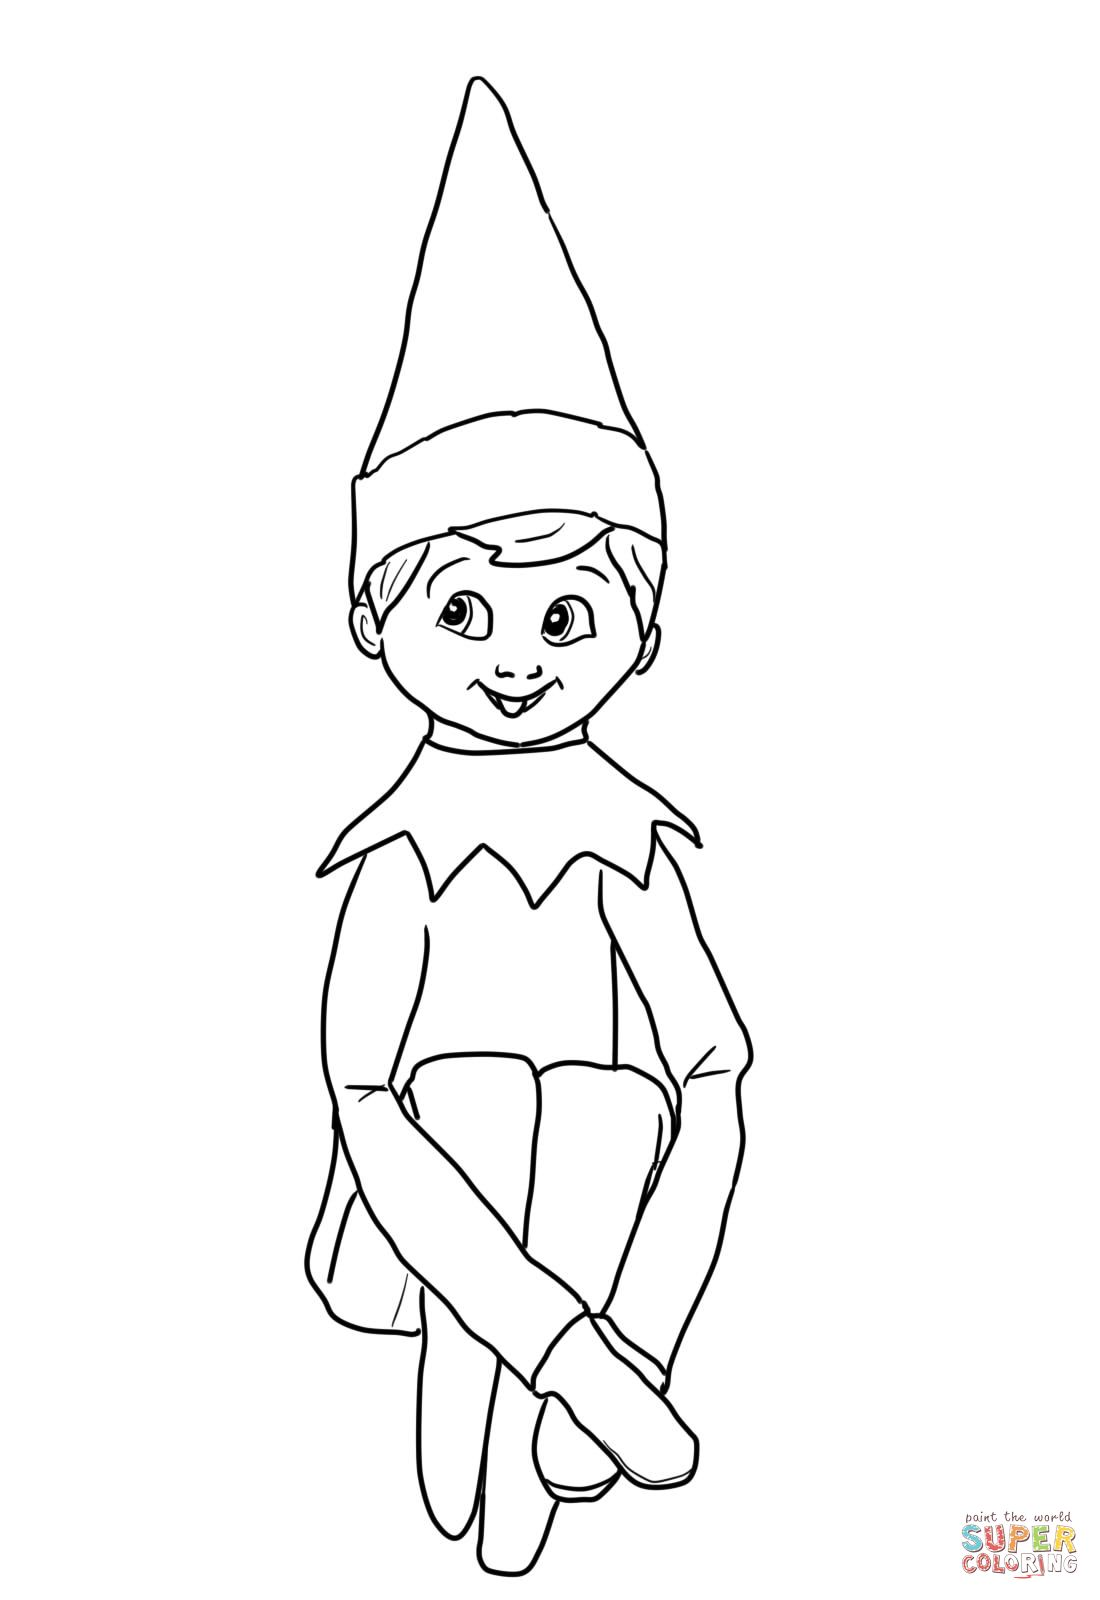 photo relating to Elf on the Shelf Printable Coloring Pages named Female Elf Upon the Shelf Coloring Webpages Your self could possibly as well be